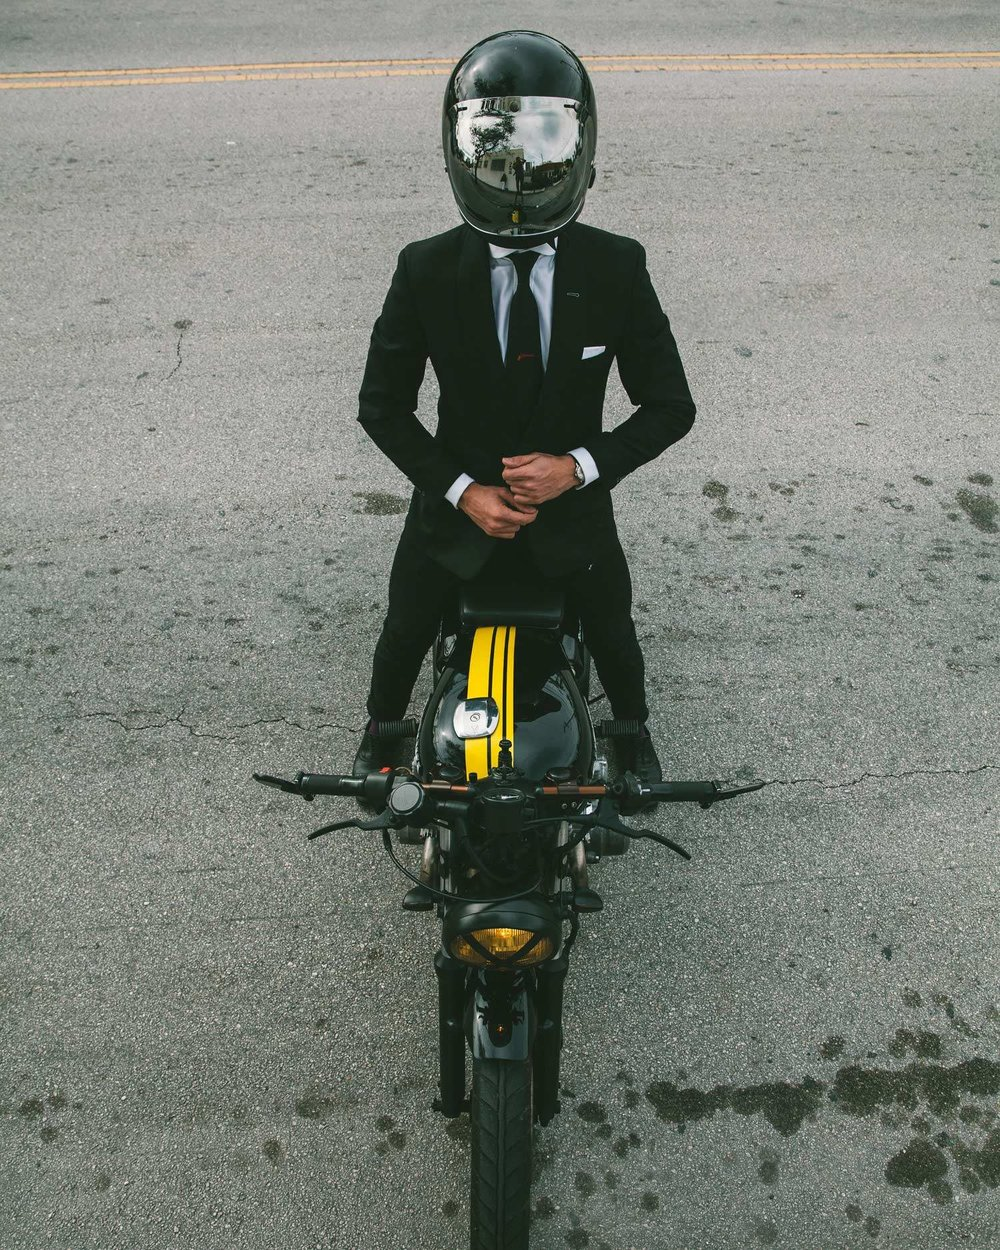 the-suited-racer-SMF-right.jpg